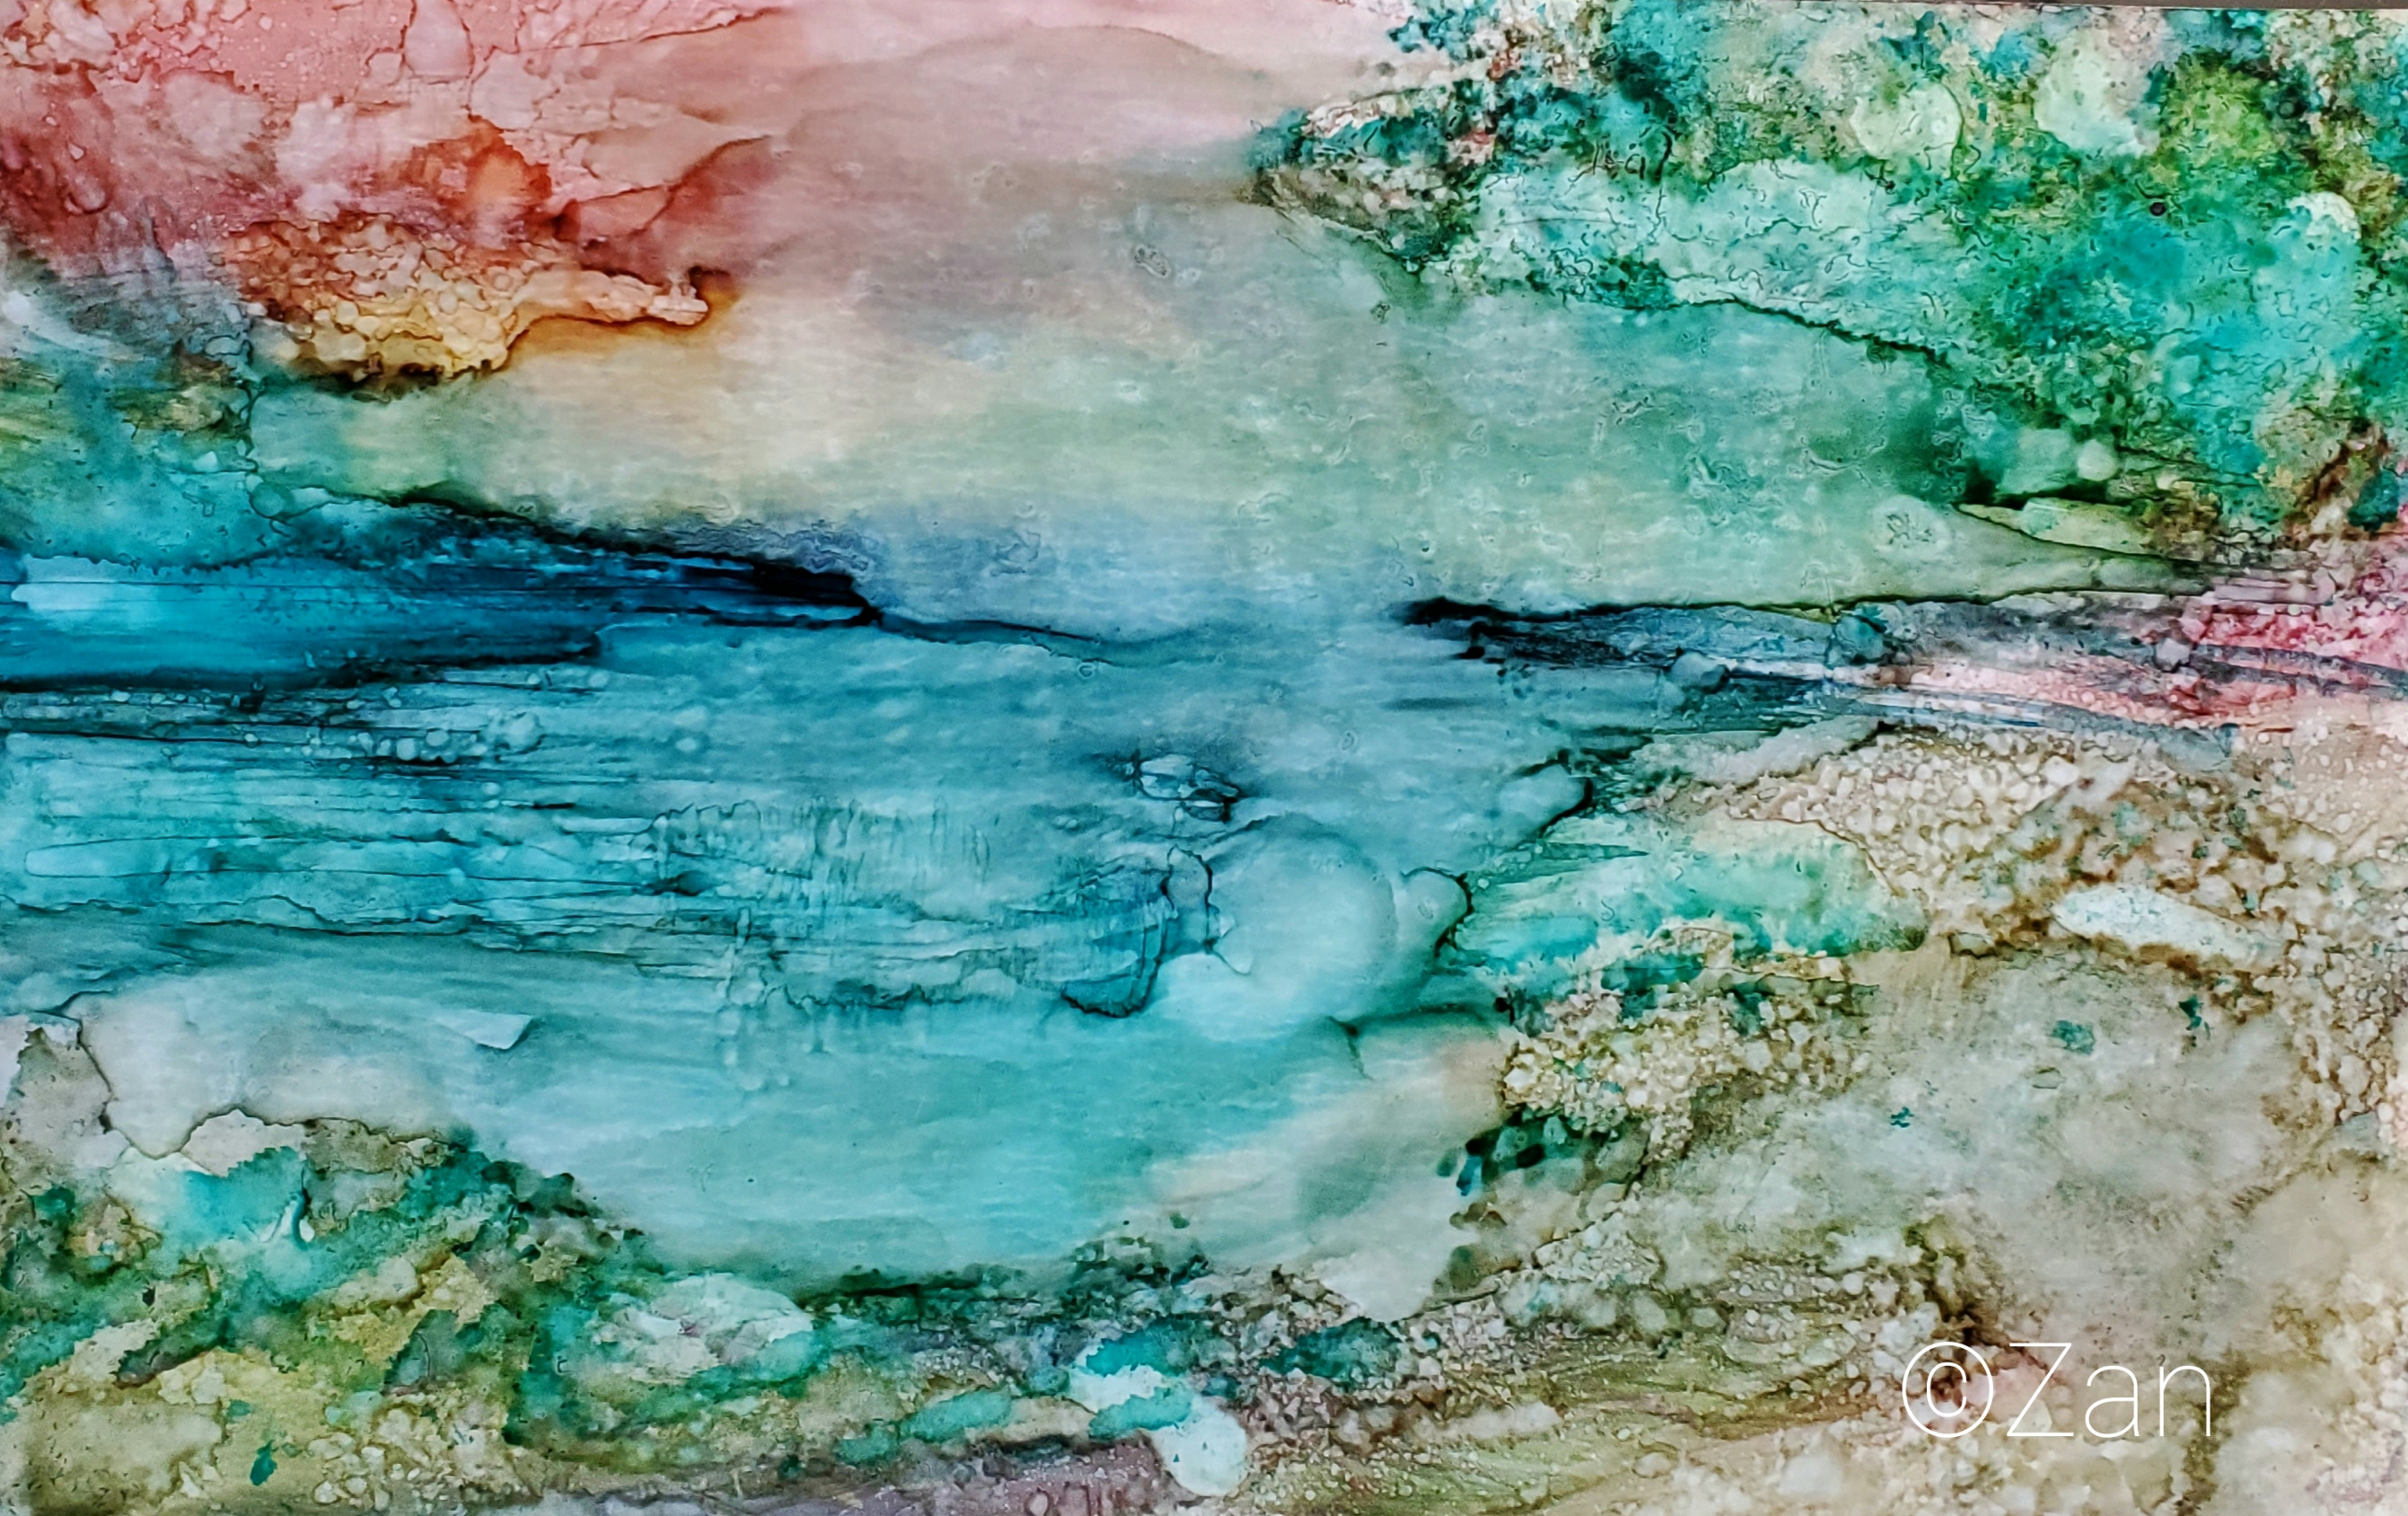 Cool Breeze 5×8 alcohol ink©Zan Savage Image is a Zan Savage original. Copying, altering, printing or redistribution of any images without written permission from the Artist is strictly prohibited.